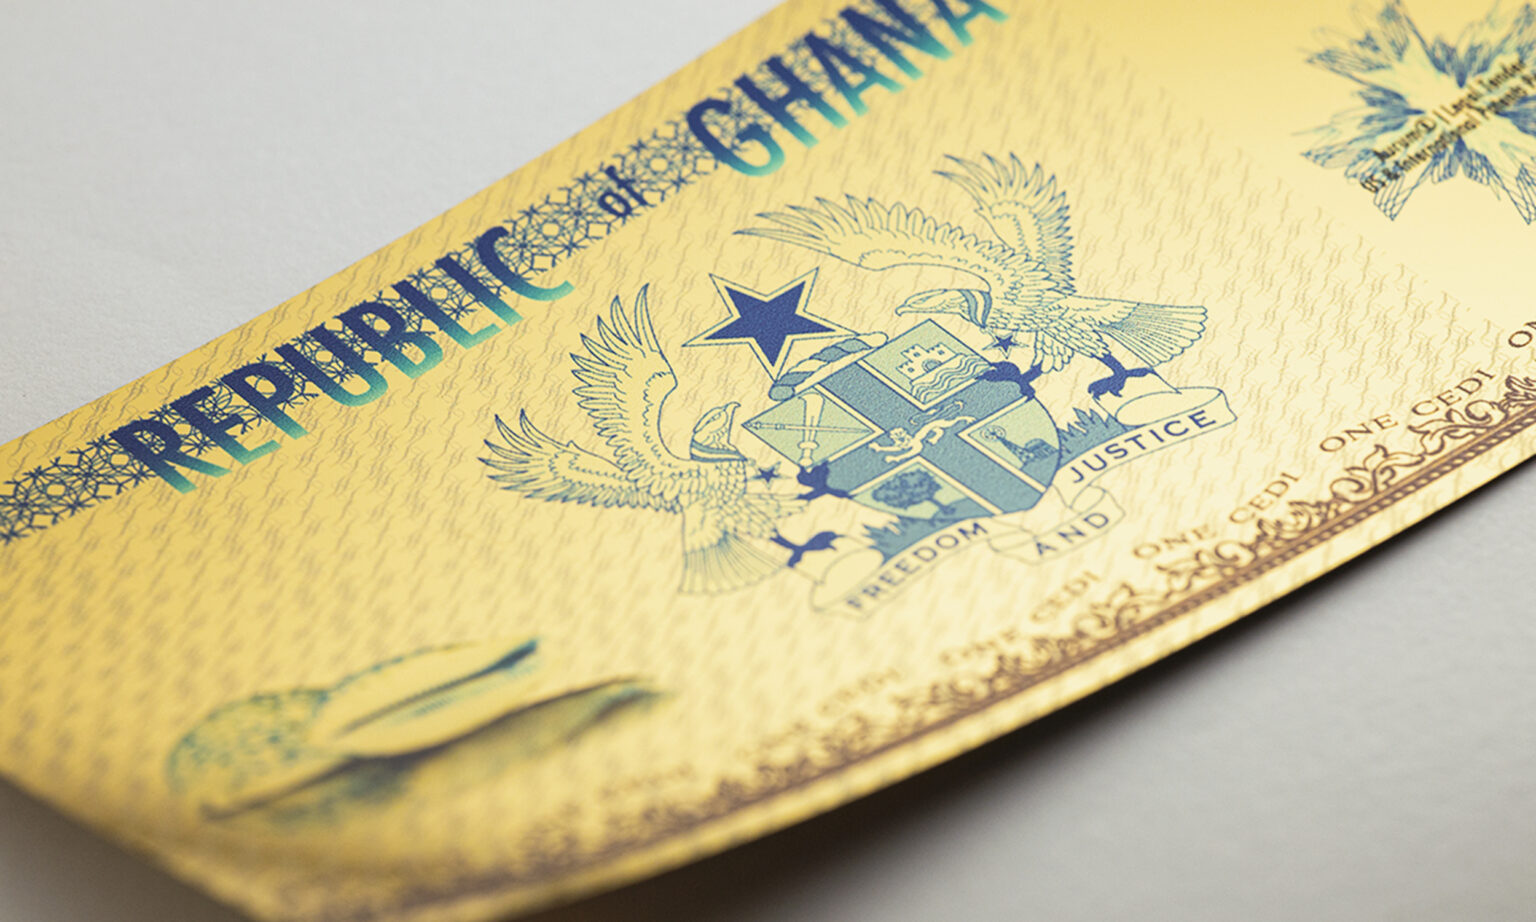 Republic of Ghana - 1 Cedi